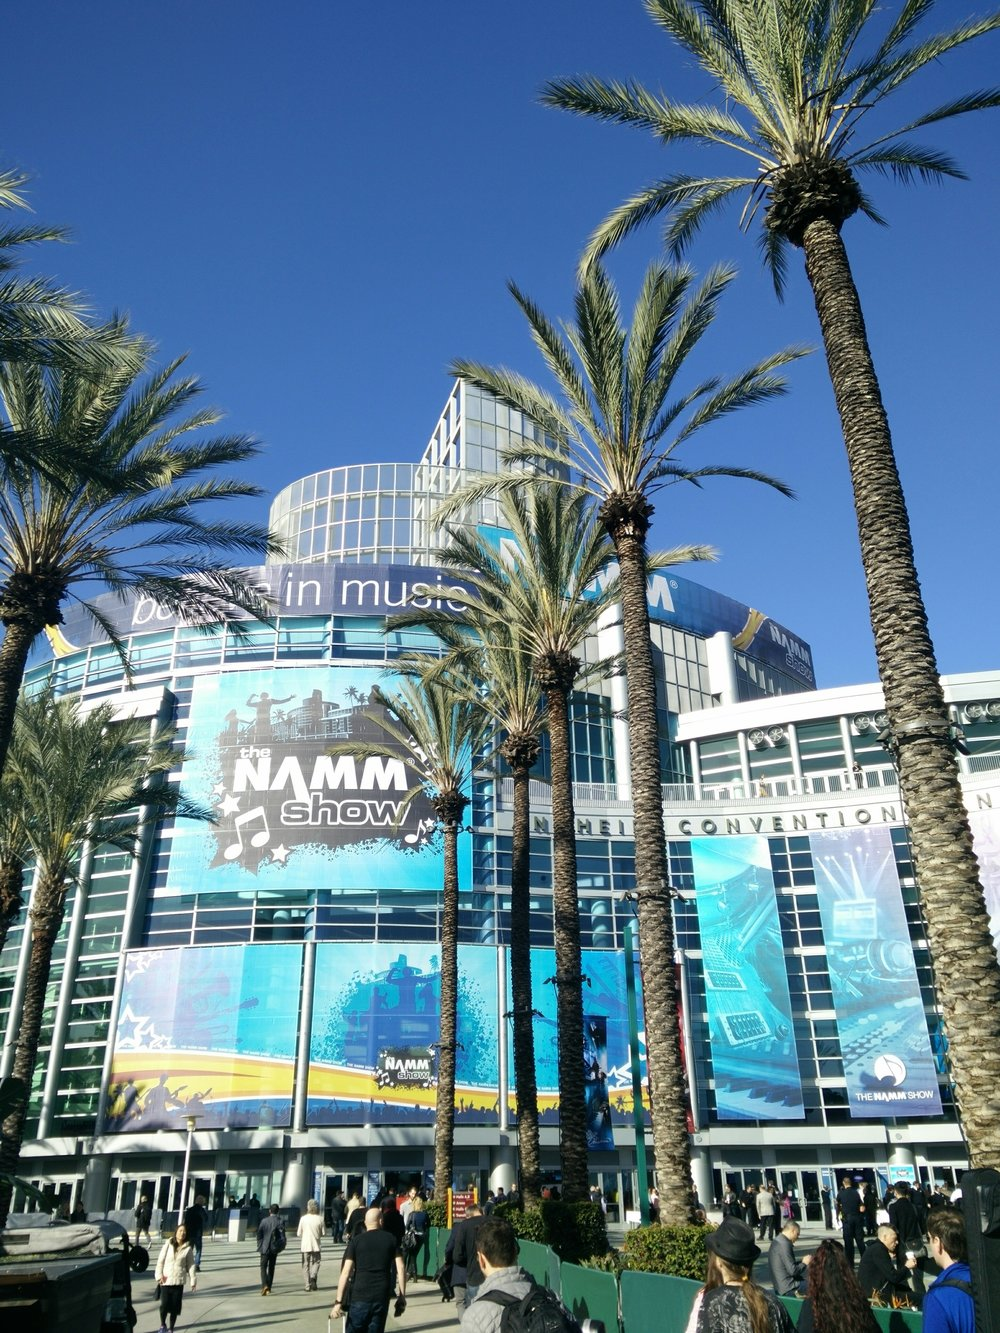 Anaheim Convention Center. It's across the street from Disneyland. Anaheim is 80's-era Hotels, chain family restaurants, and 6-lane streets. But there are palm trees. It's amazing what palm trees do to your state of mind.